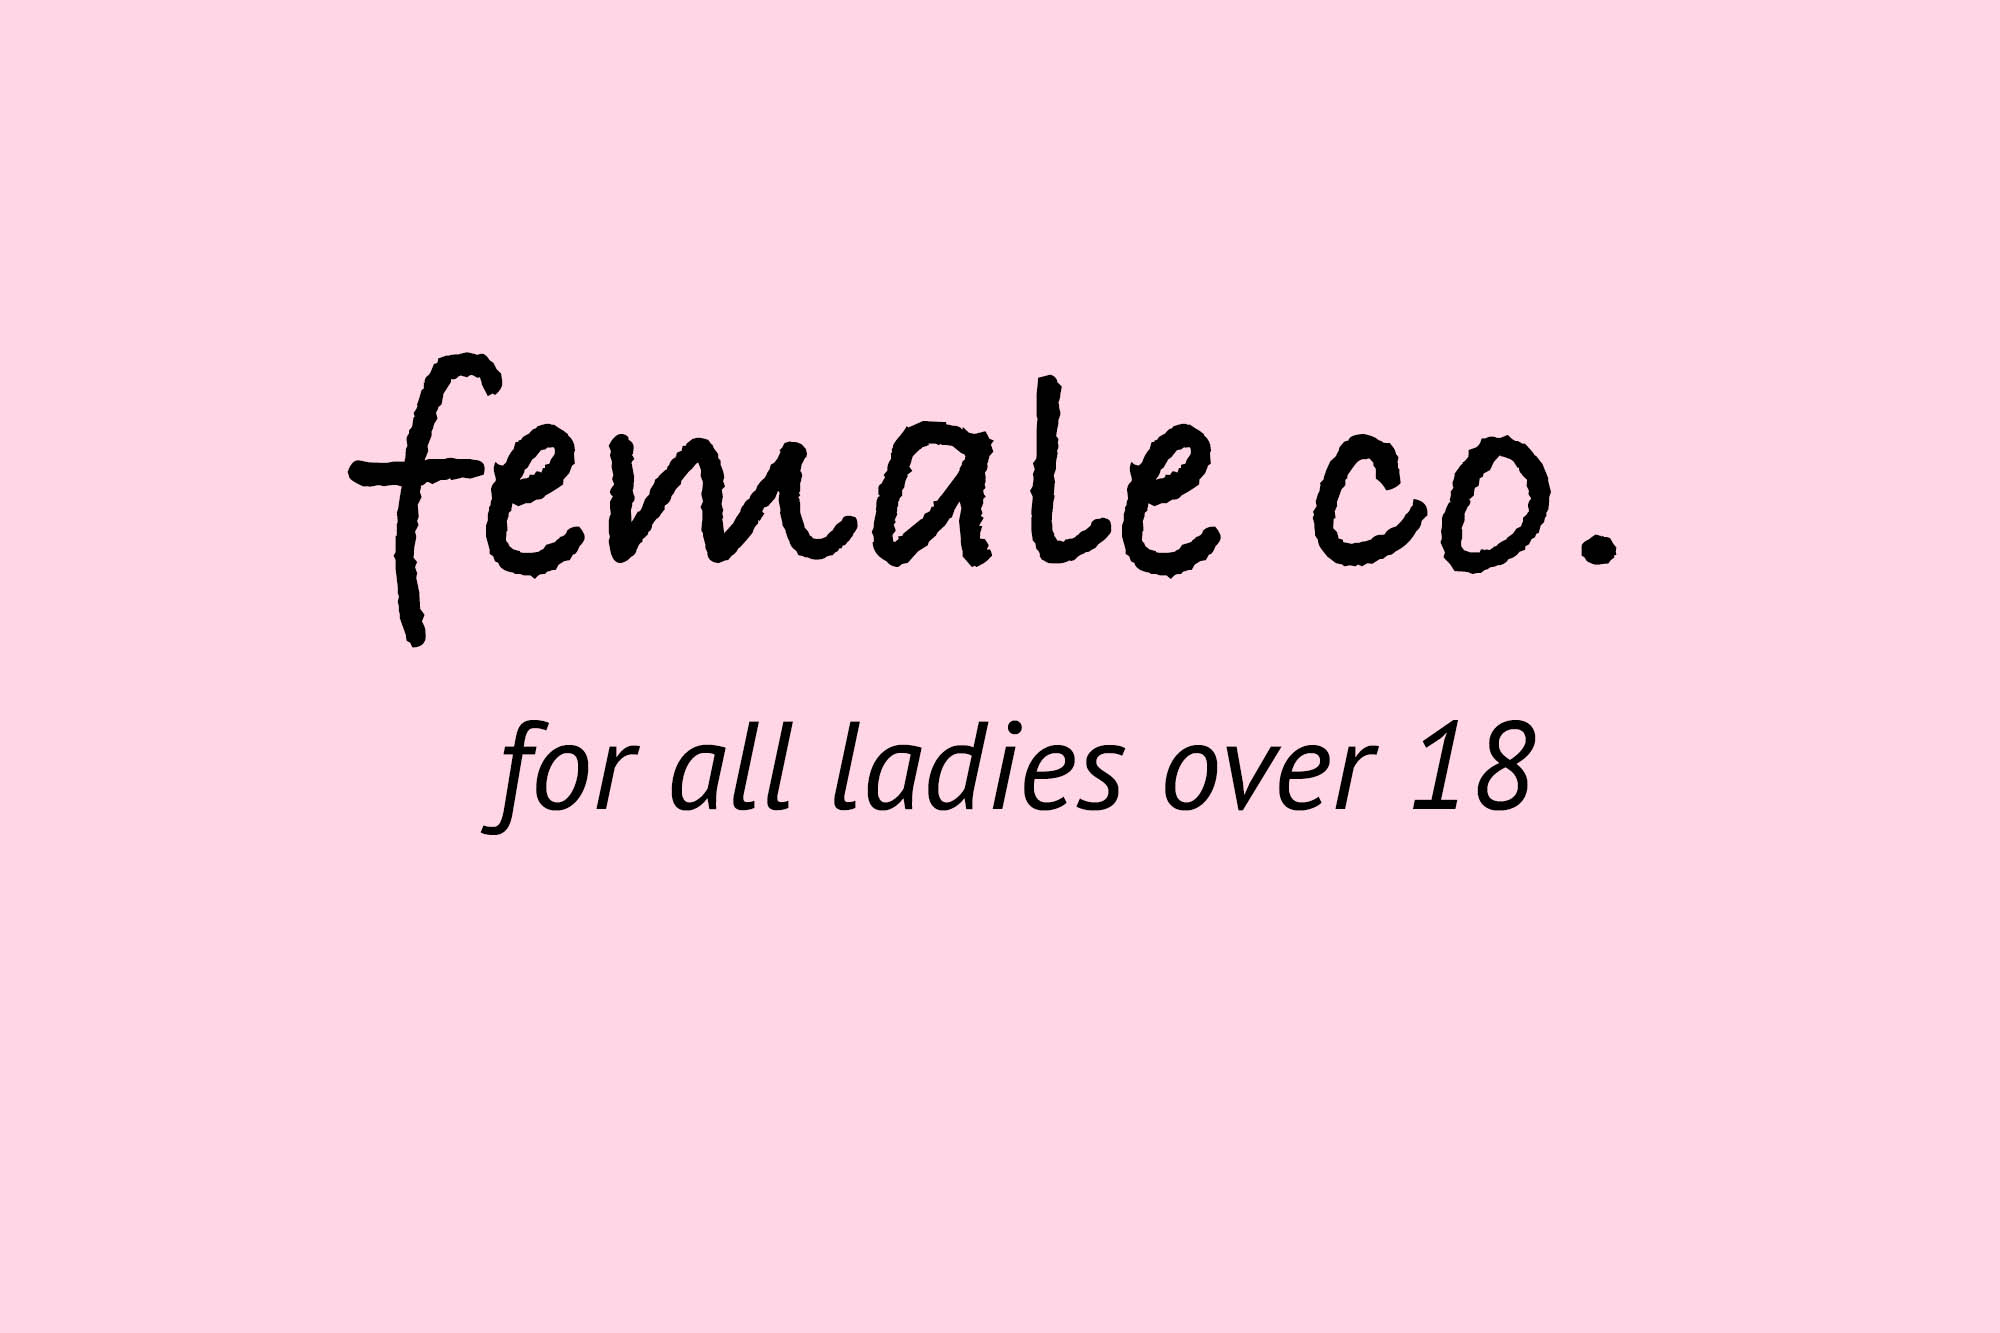 female co.